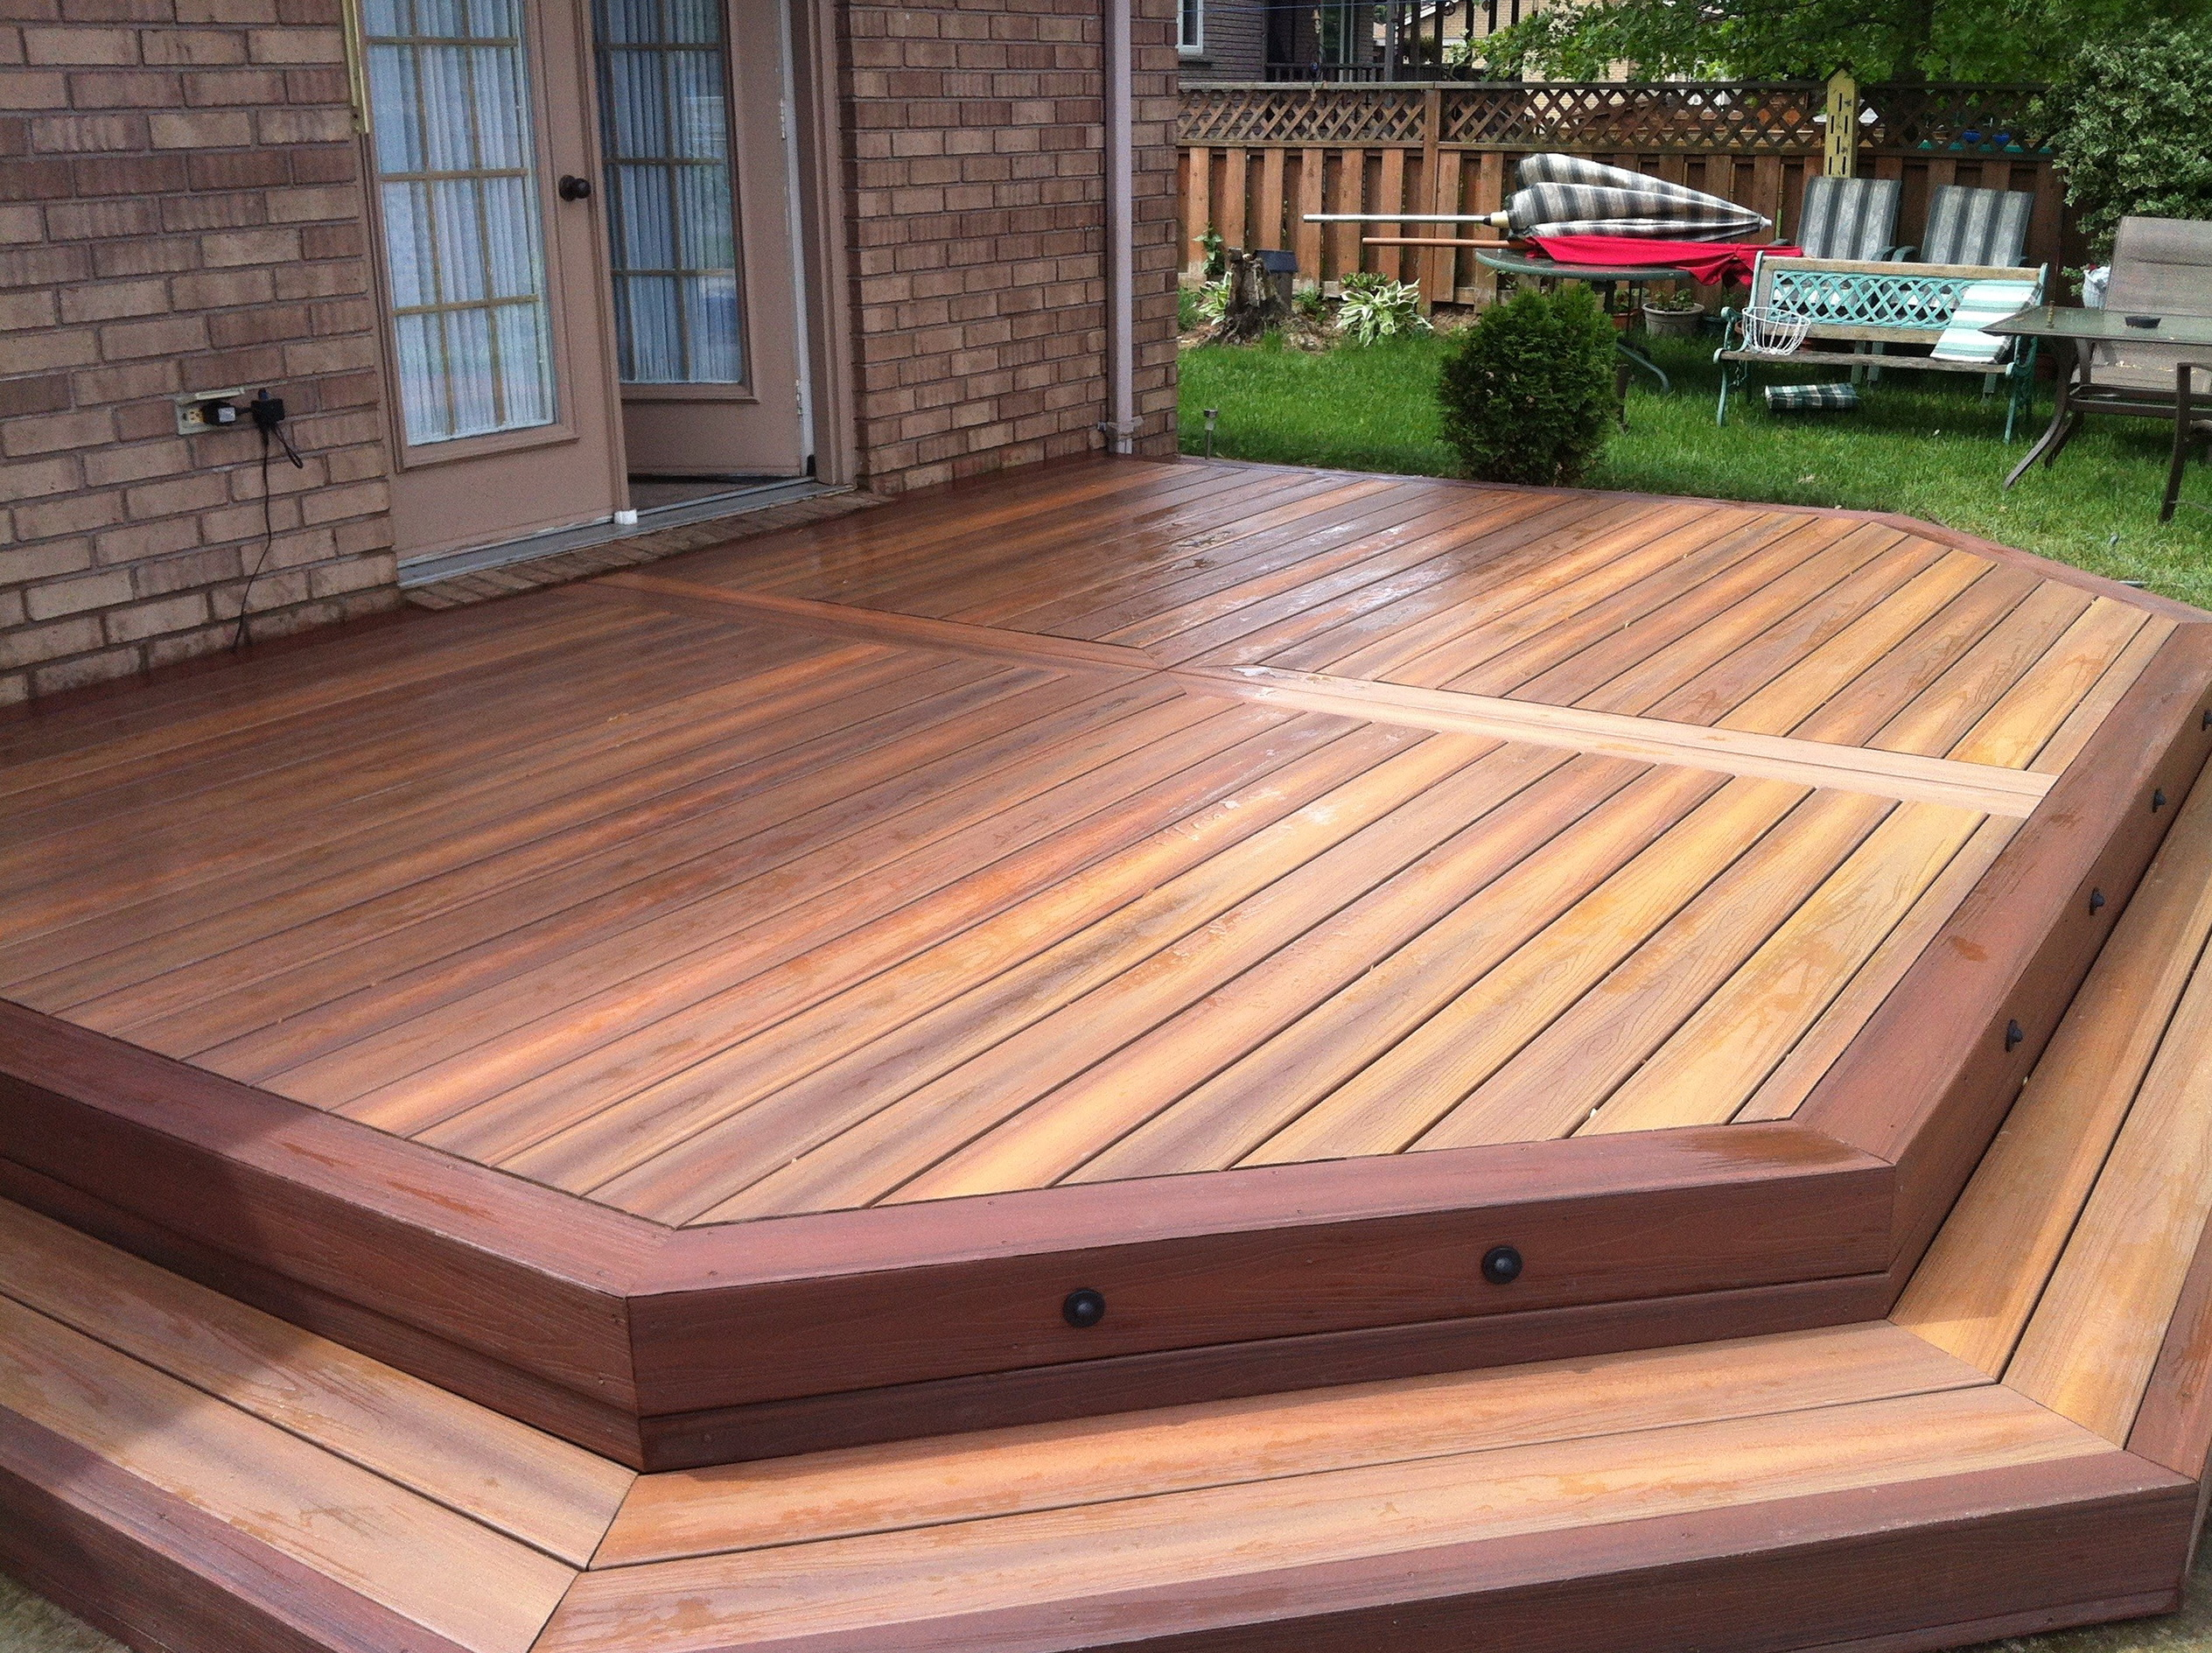 Trex Decking Installation Video Home Design Ideas